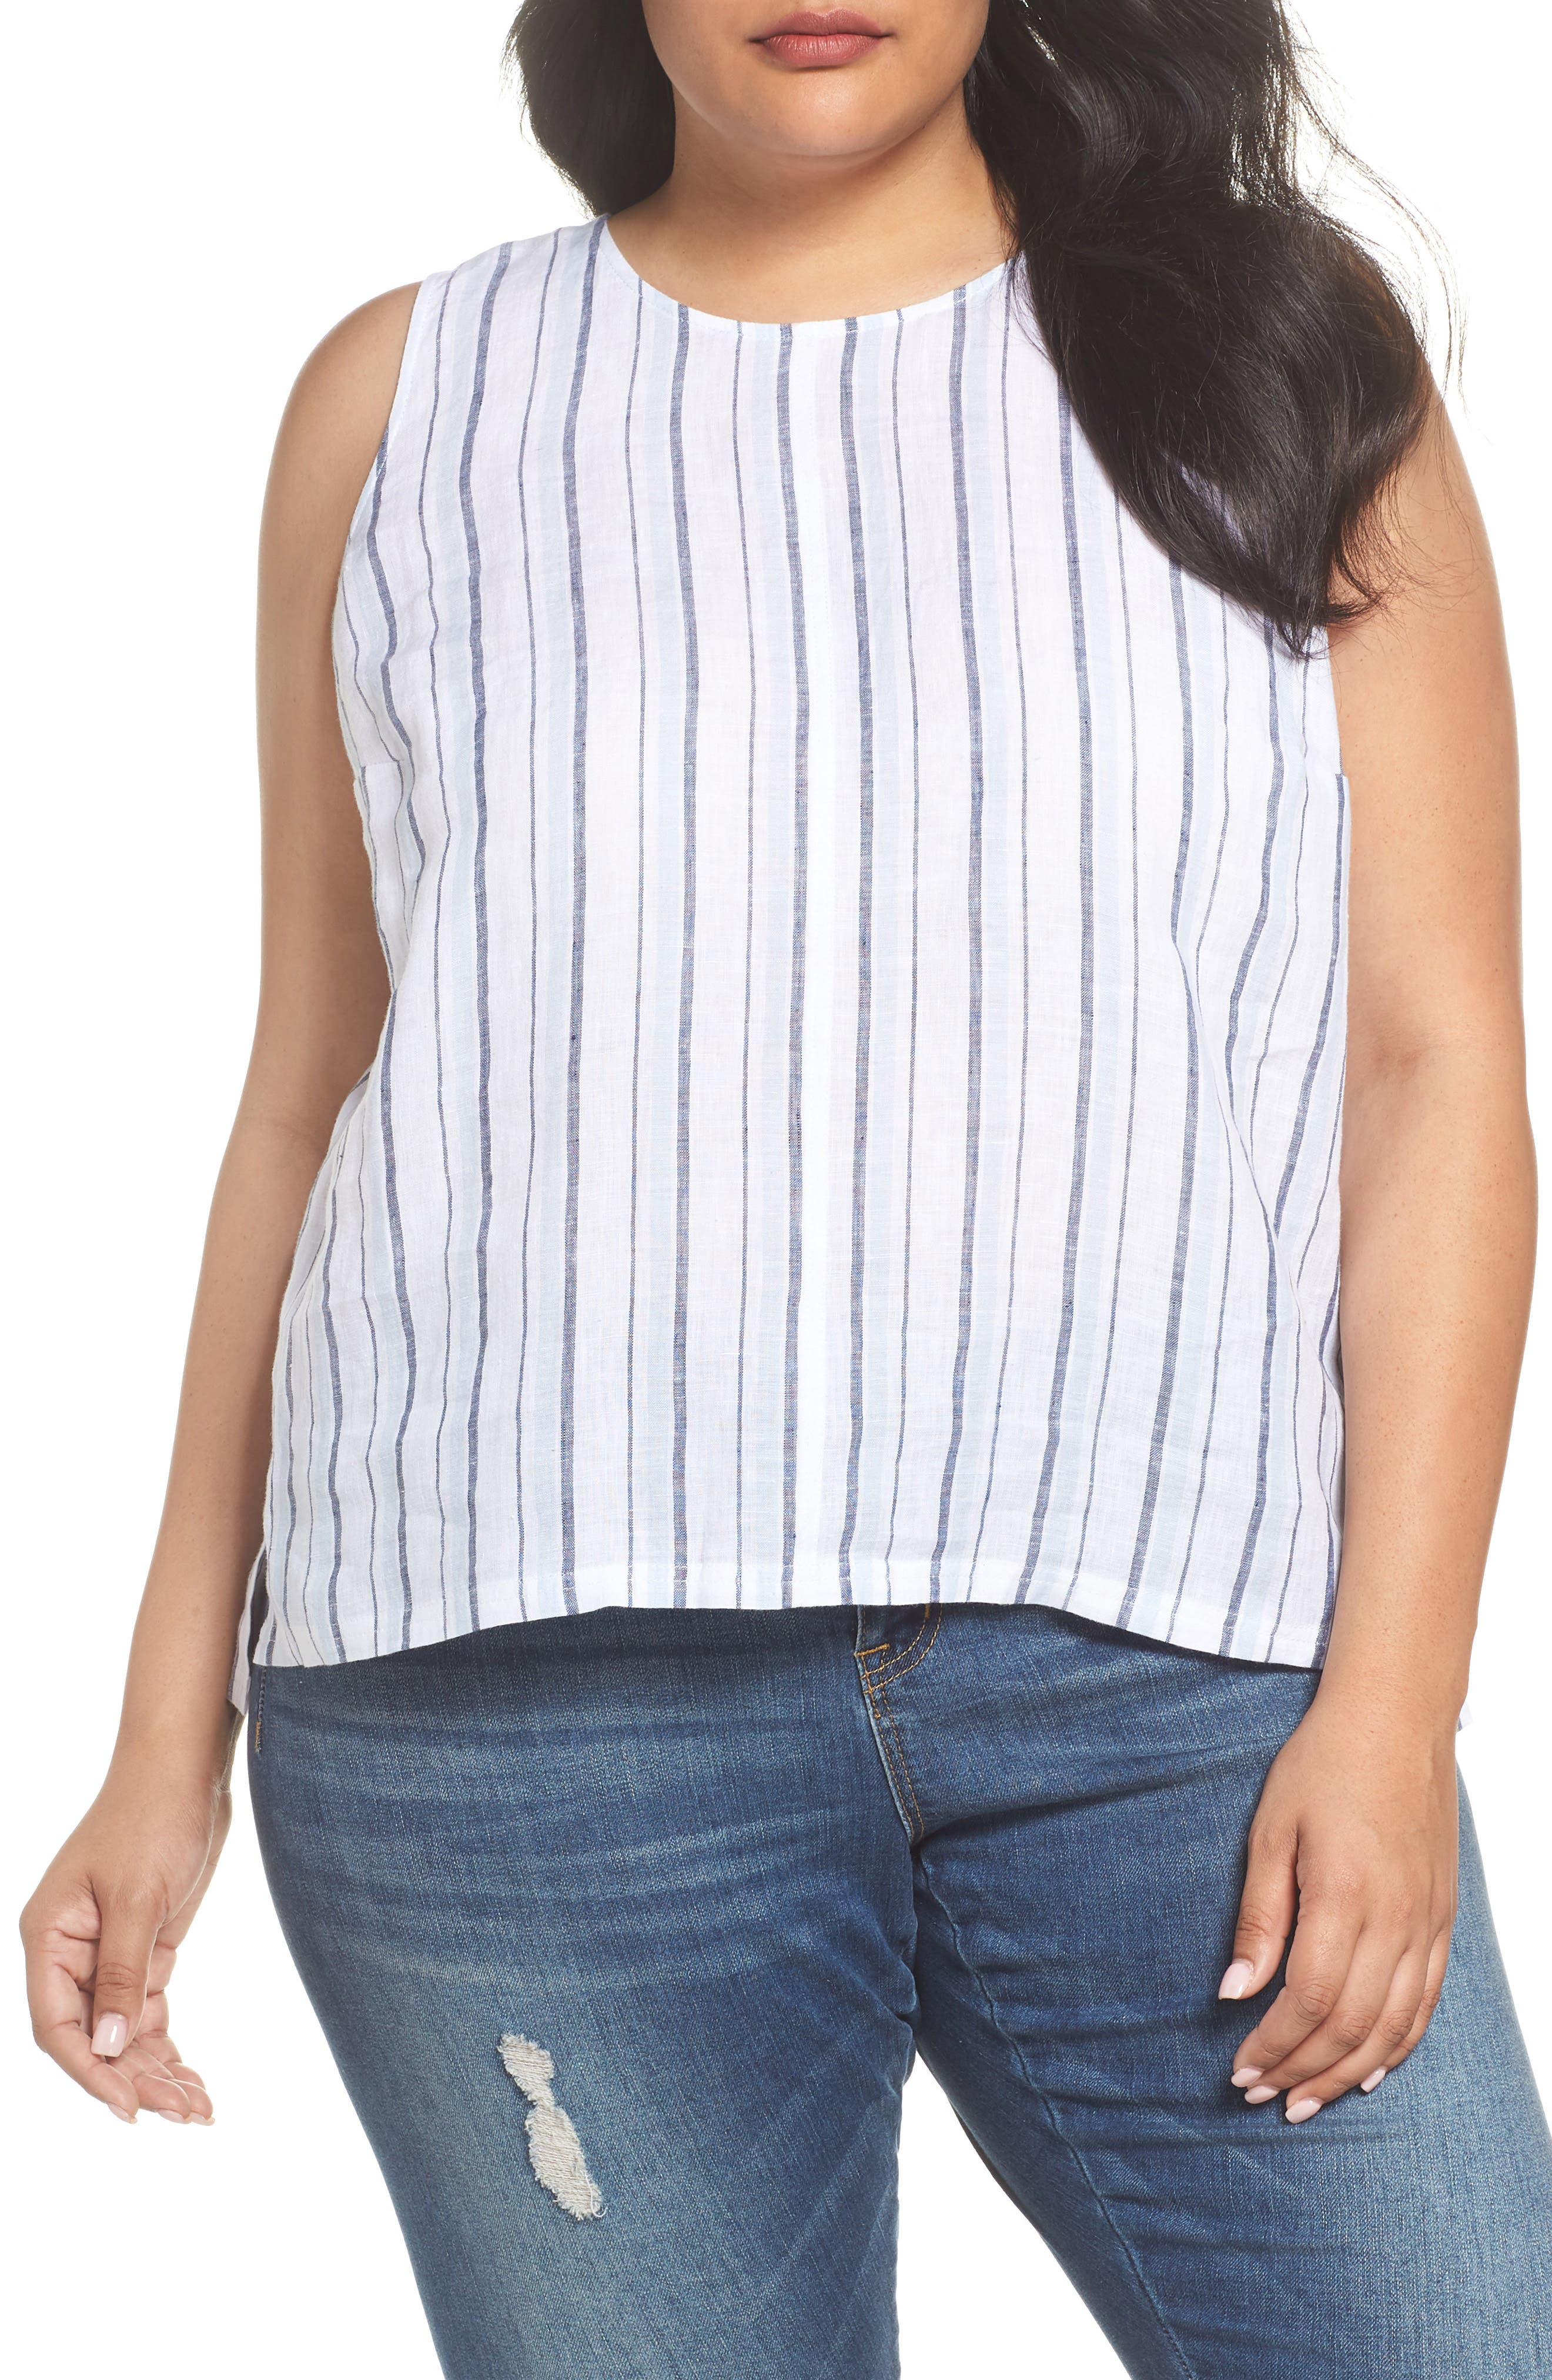 Alternate Image 1 Selected - Vince Camuto Stripe Lace-Up Back Linen Top (Plus Size)